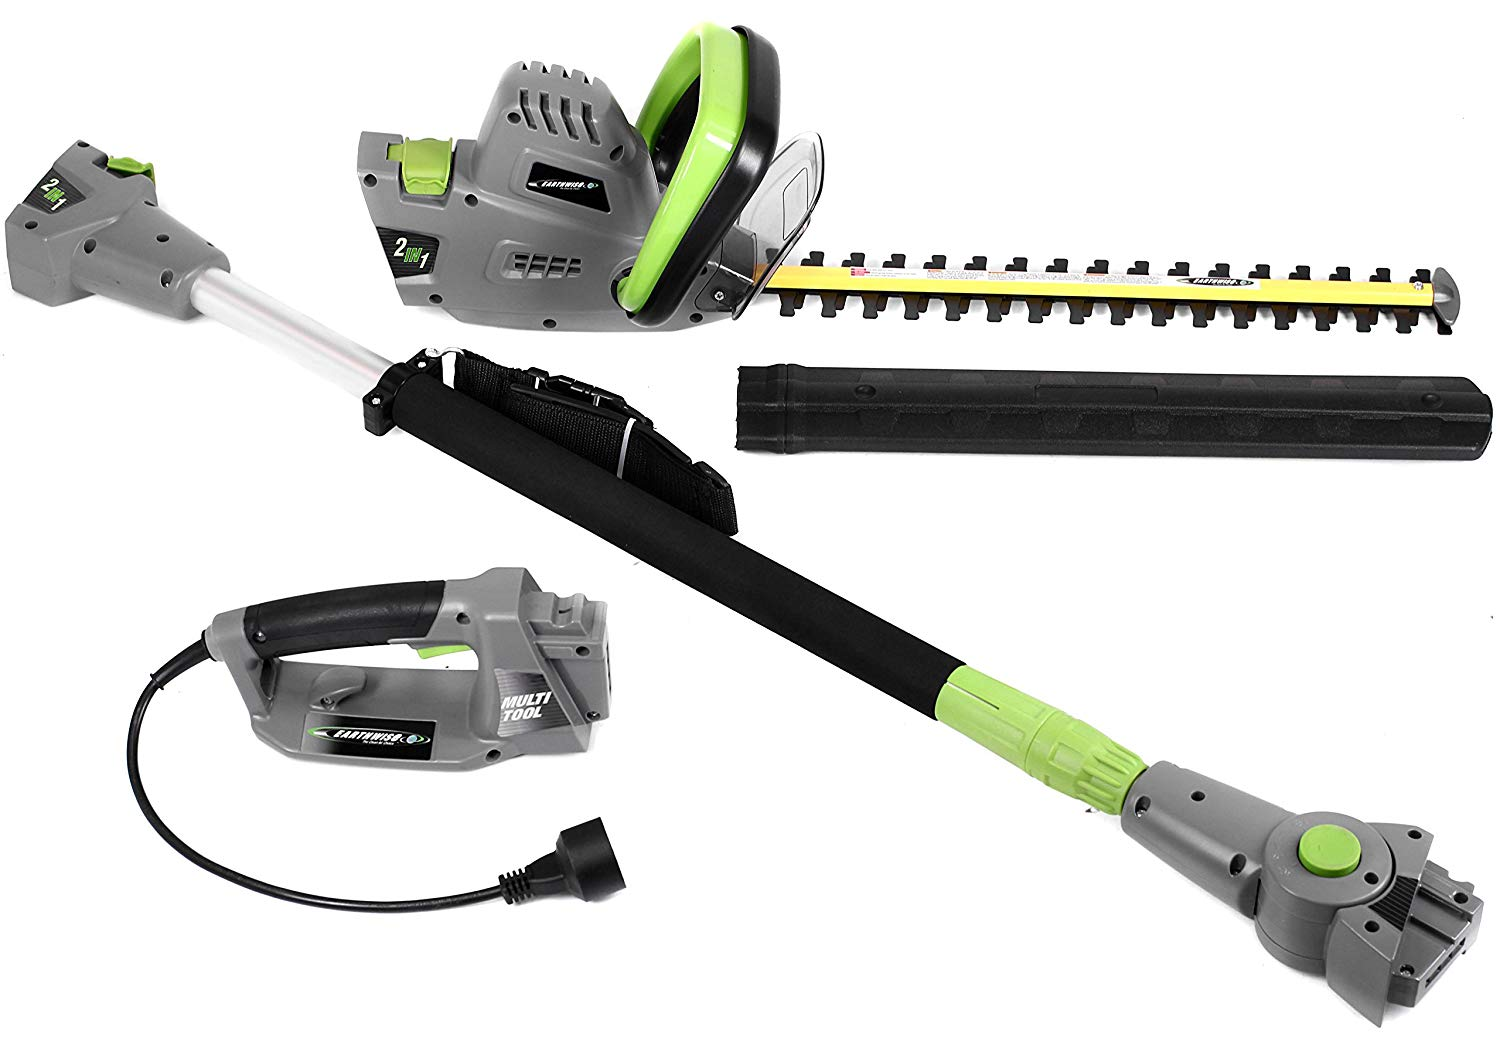 Earthwise CVPH43018 Corded 4.5 Amp 2-in-1